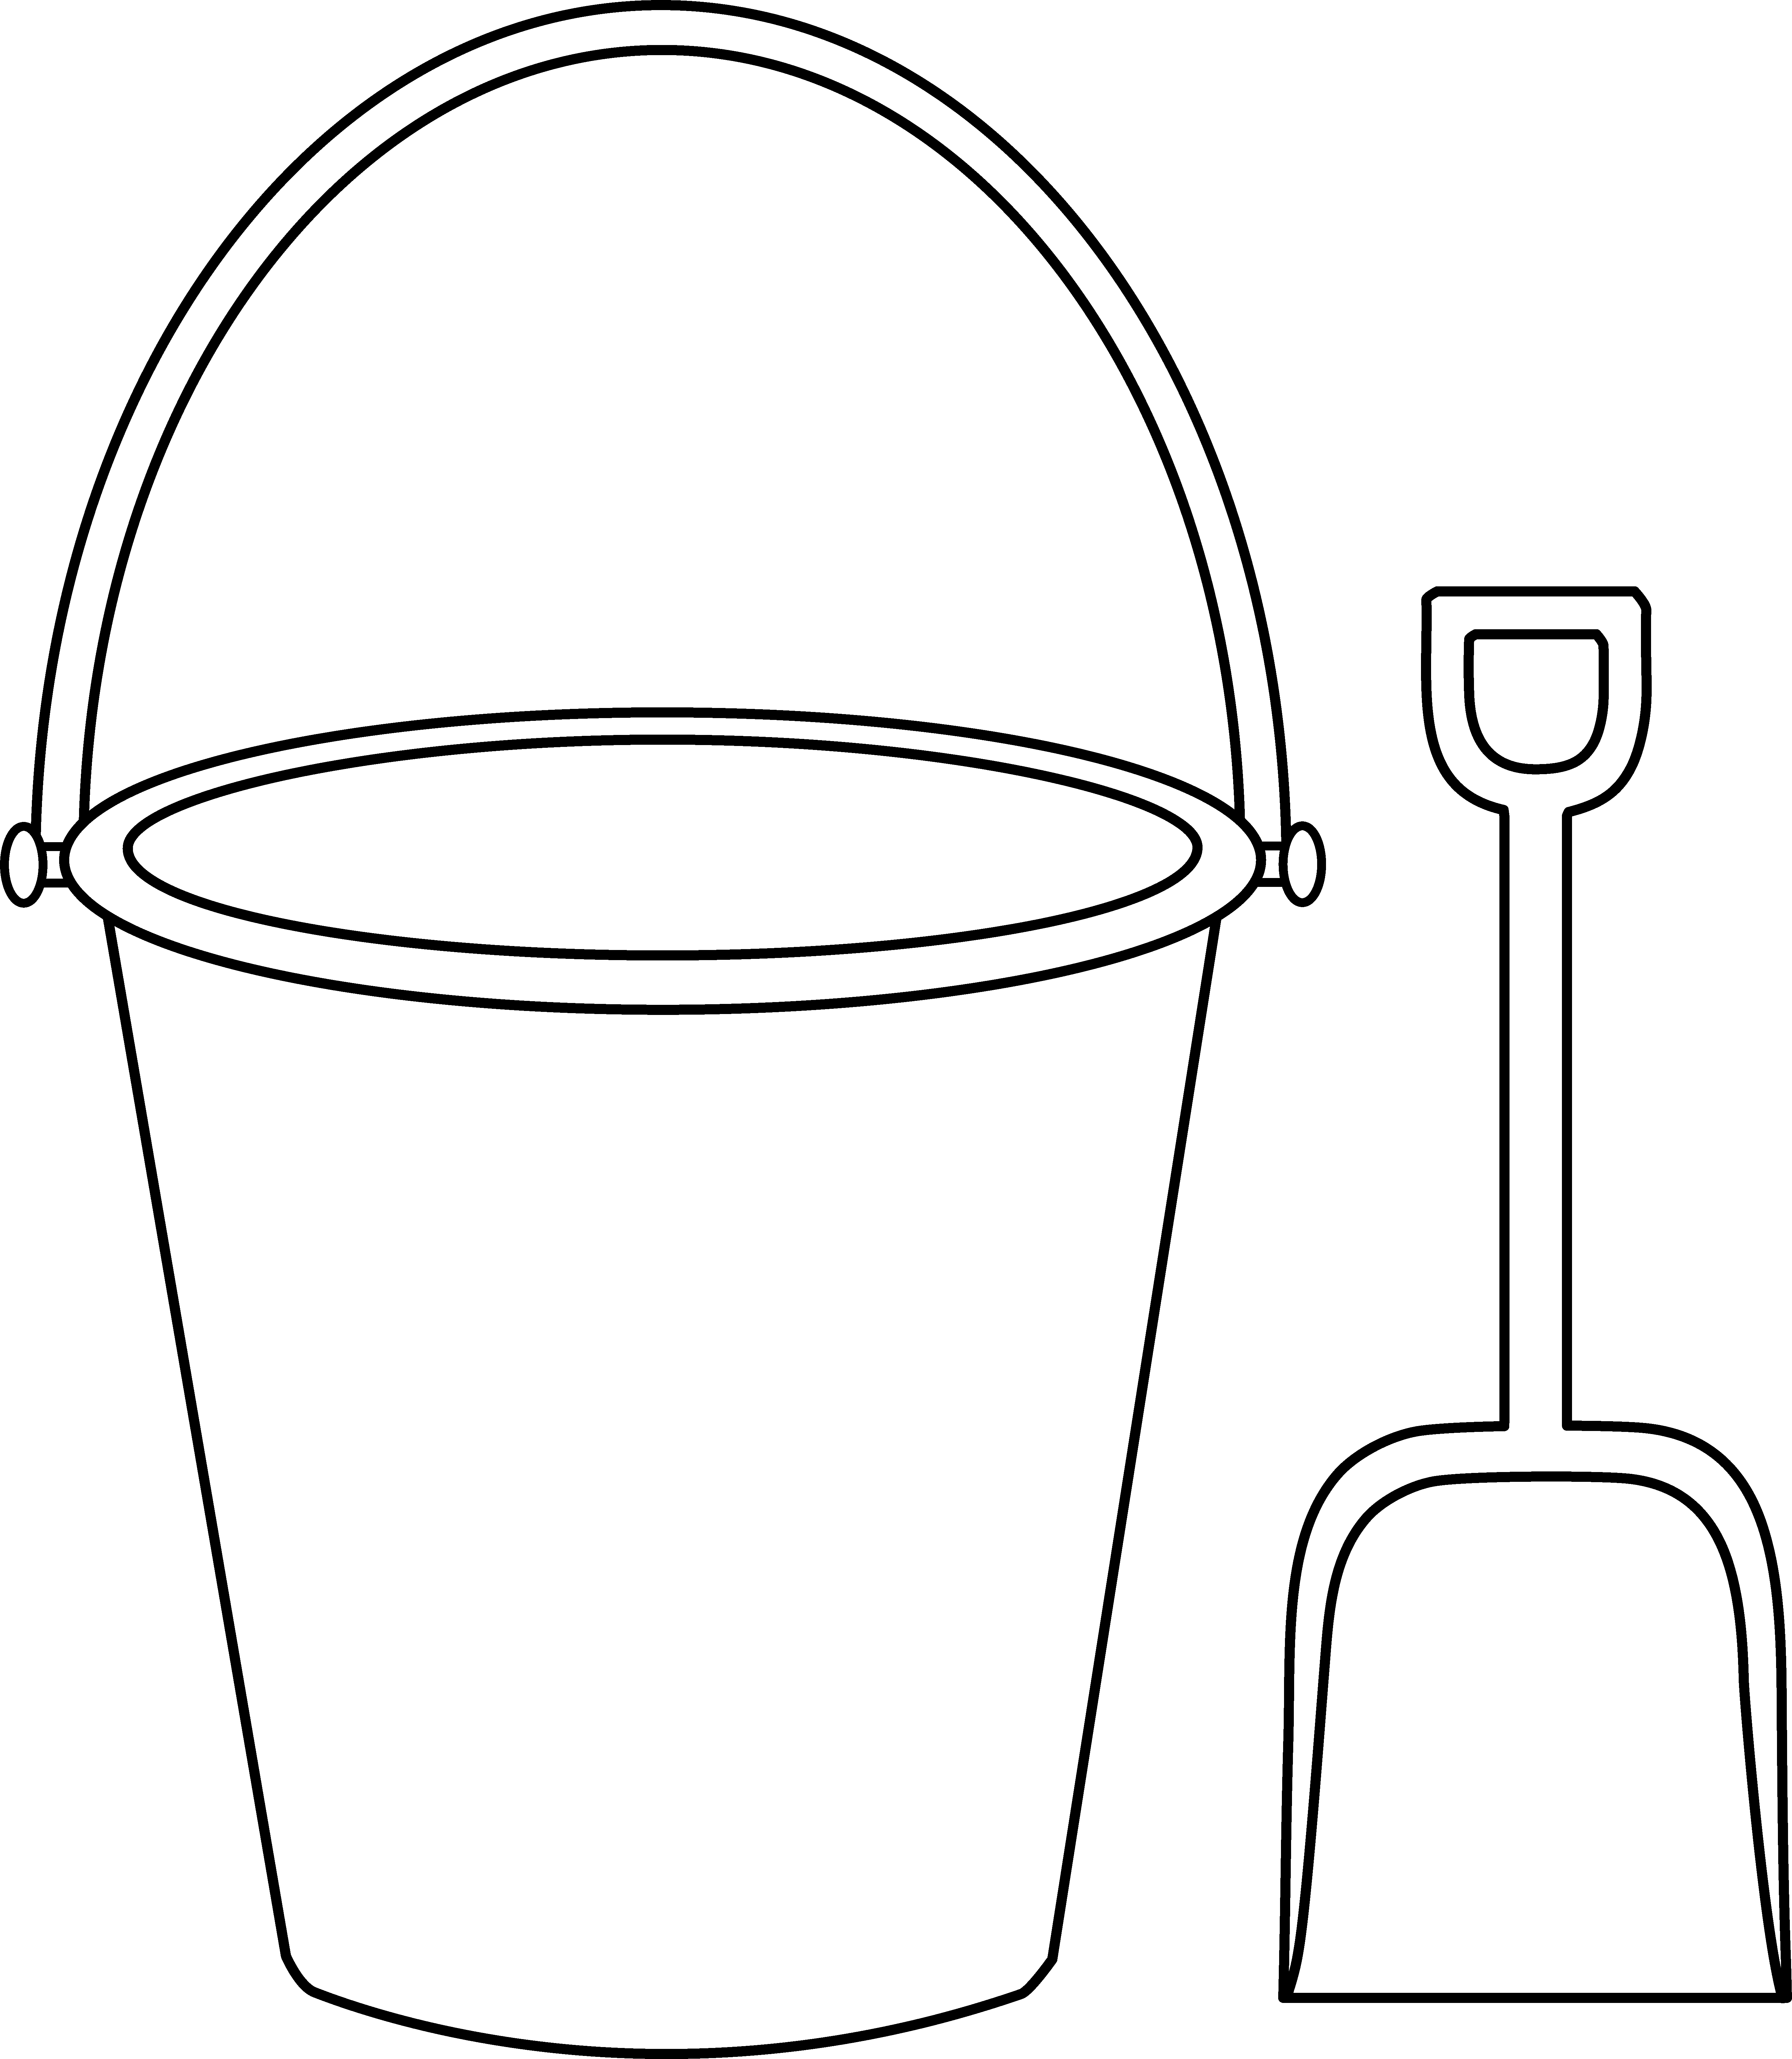 png library library Bucket and Shovel Outline